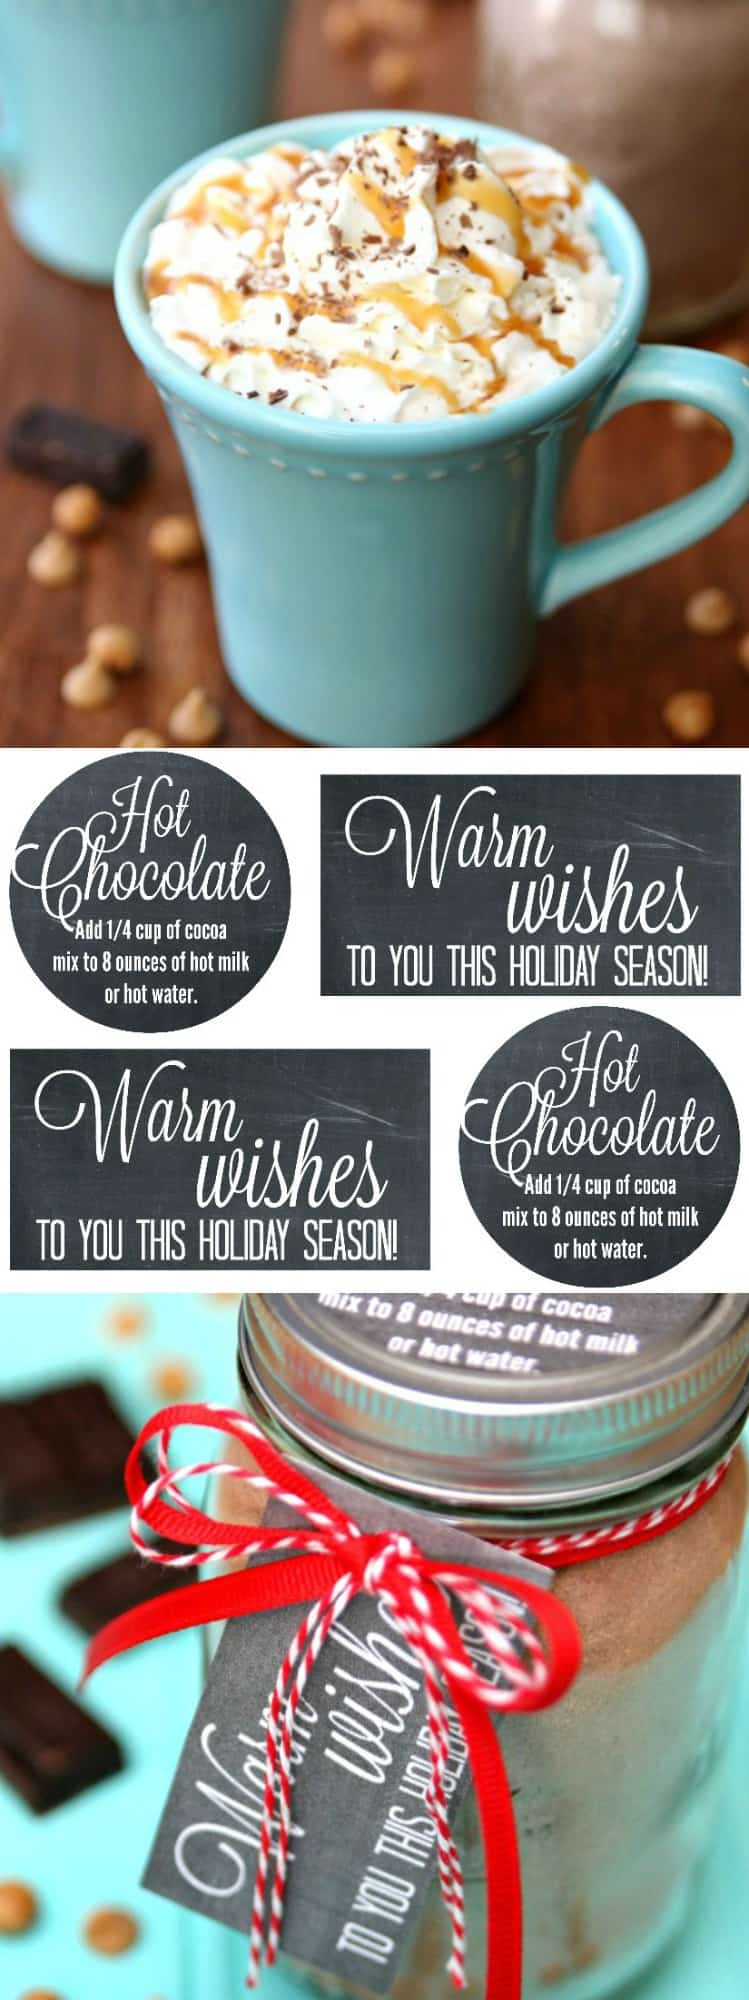 peanut-butter-caramel-hot-chocolate-recipe-and-gift-in-a-jar